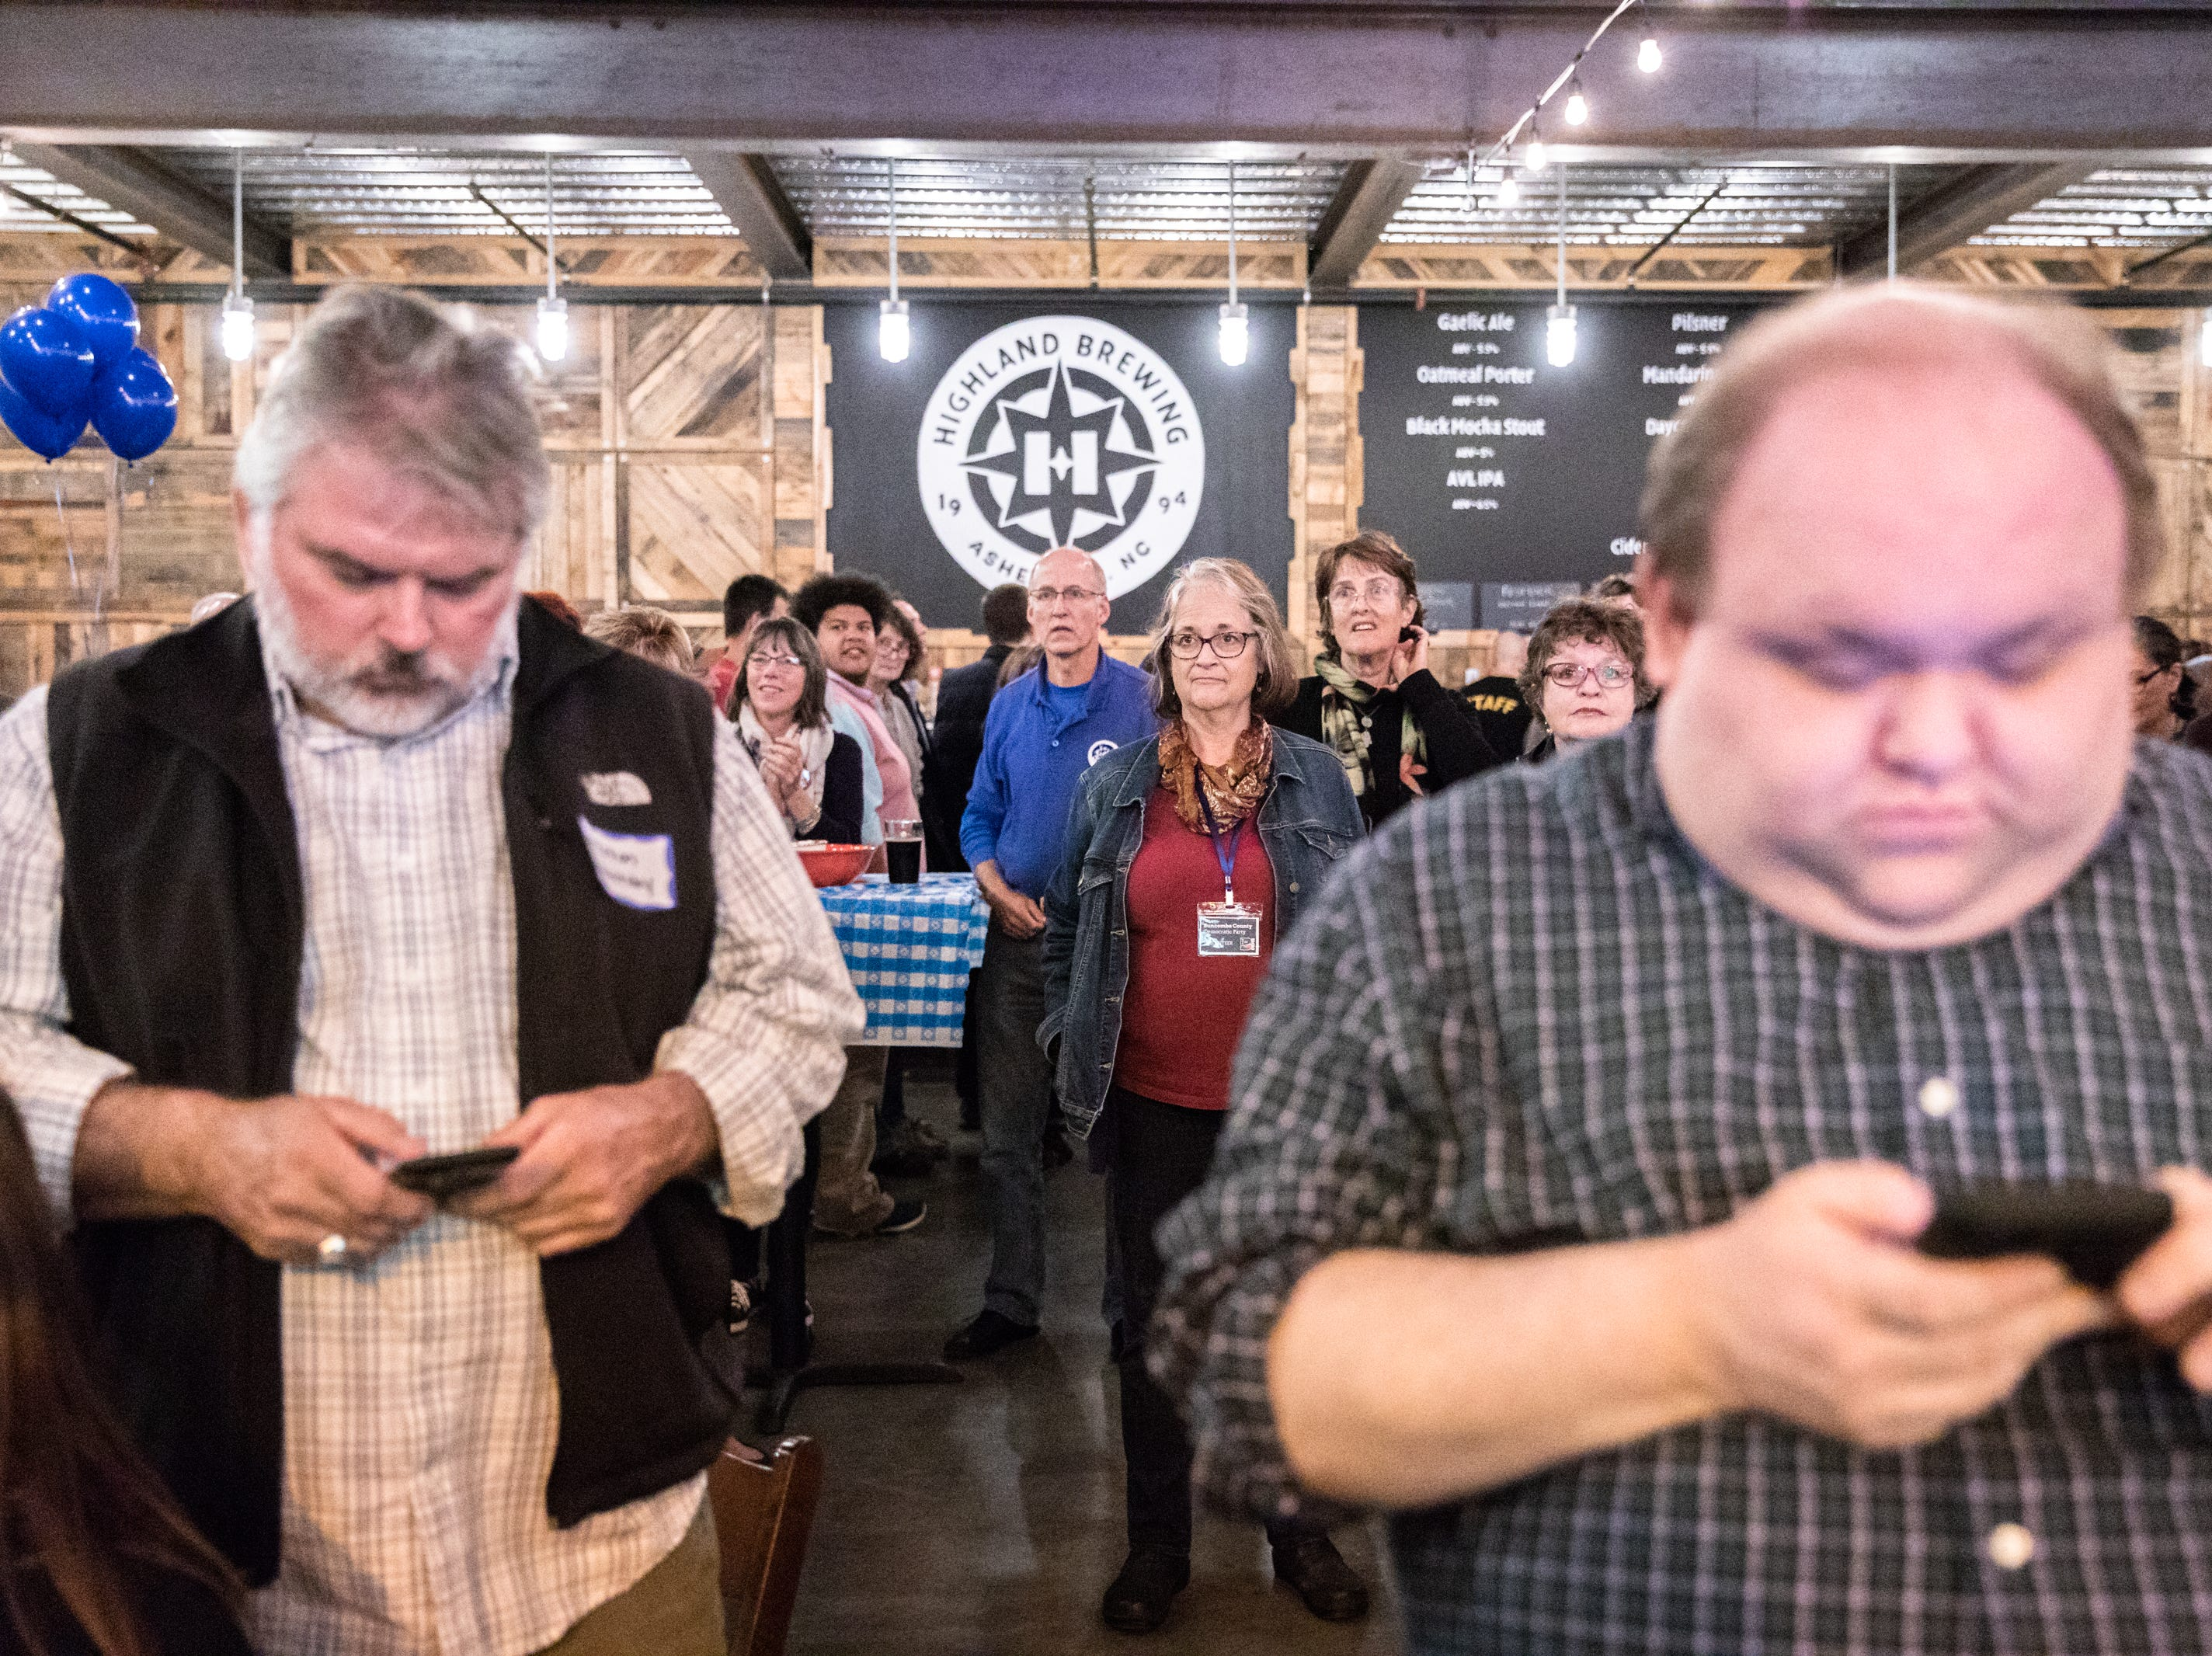 People gathered at Highland Brewing for the Democratic Party election night party in support of local and national candidates, watching as results are announced, Nov. 6, 2018.